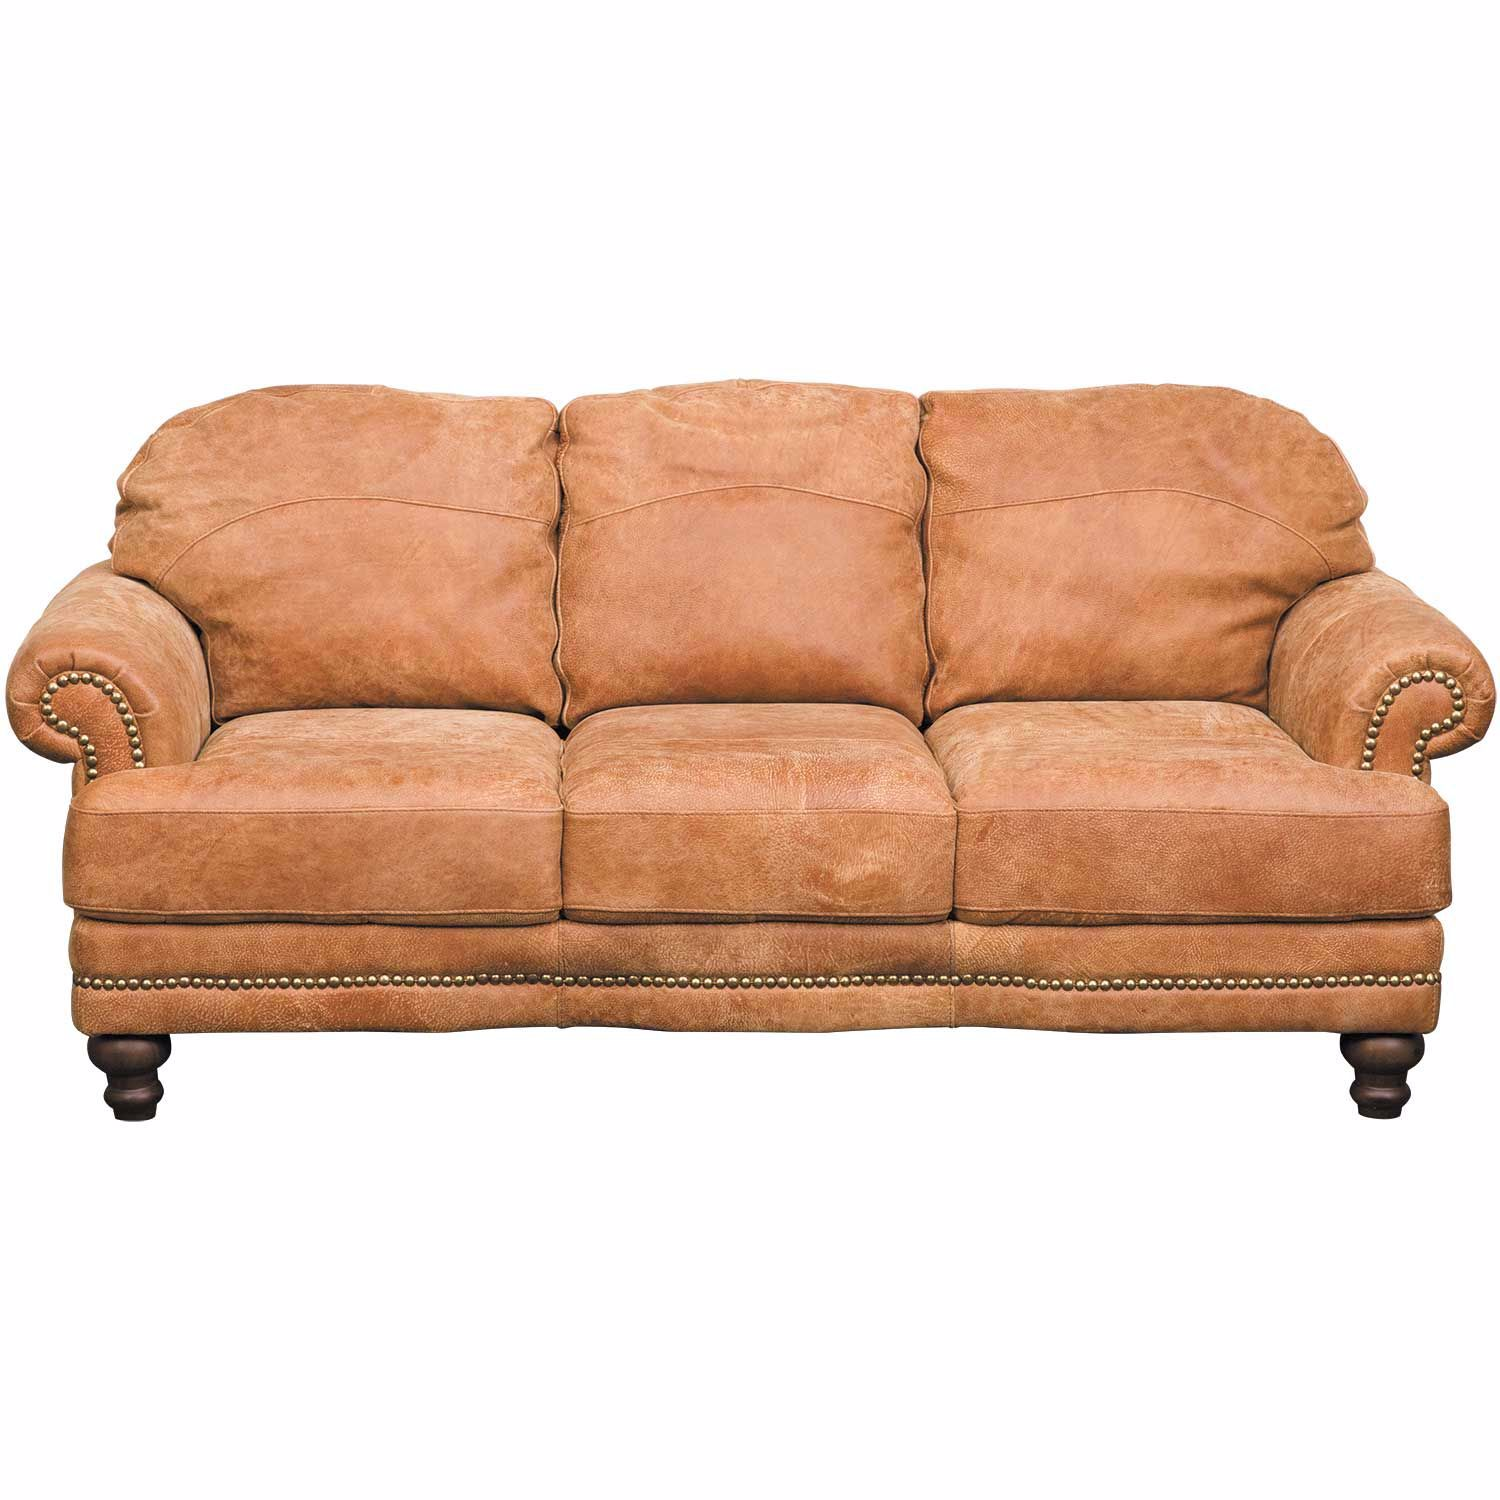 Wade Italian All Leather Sofa